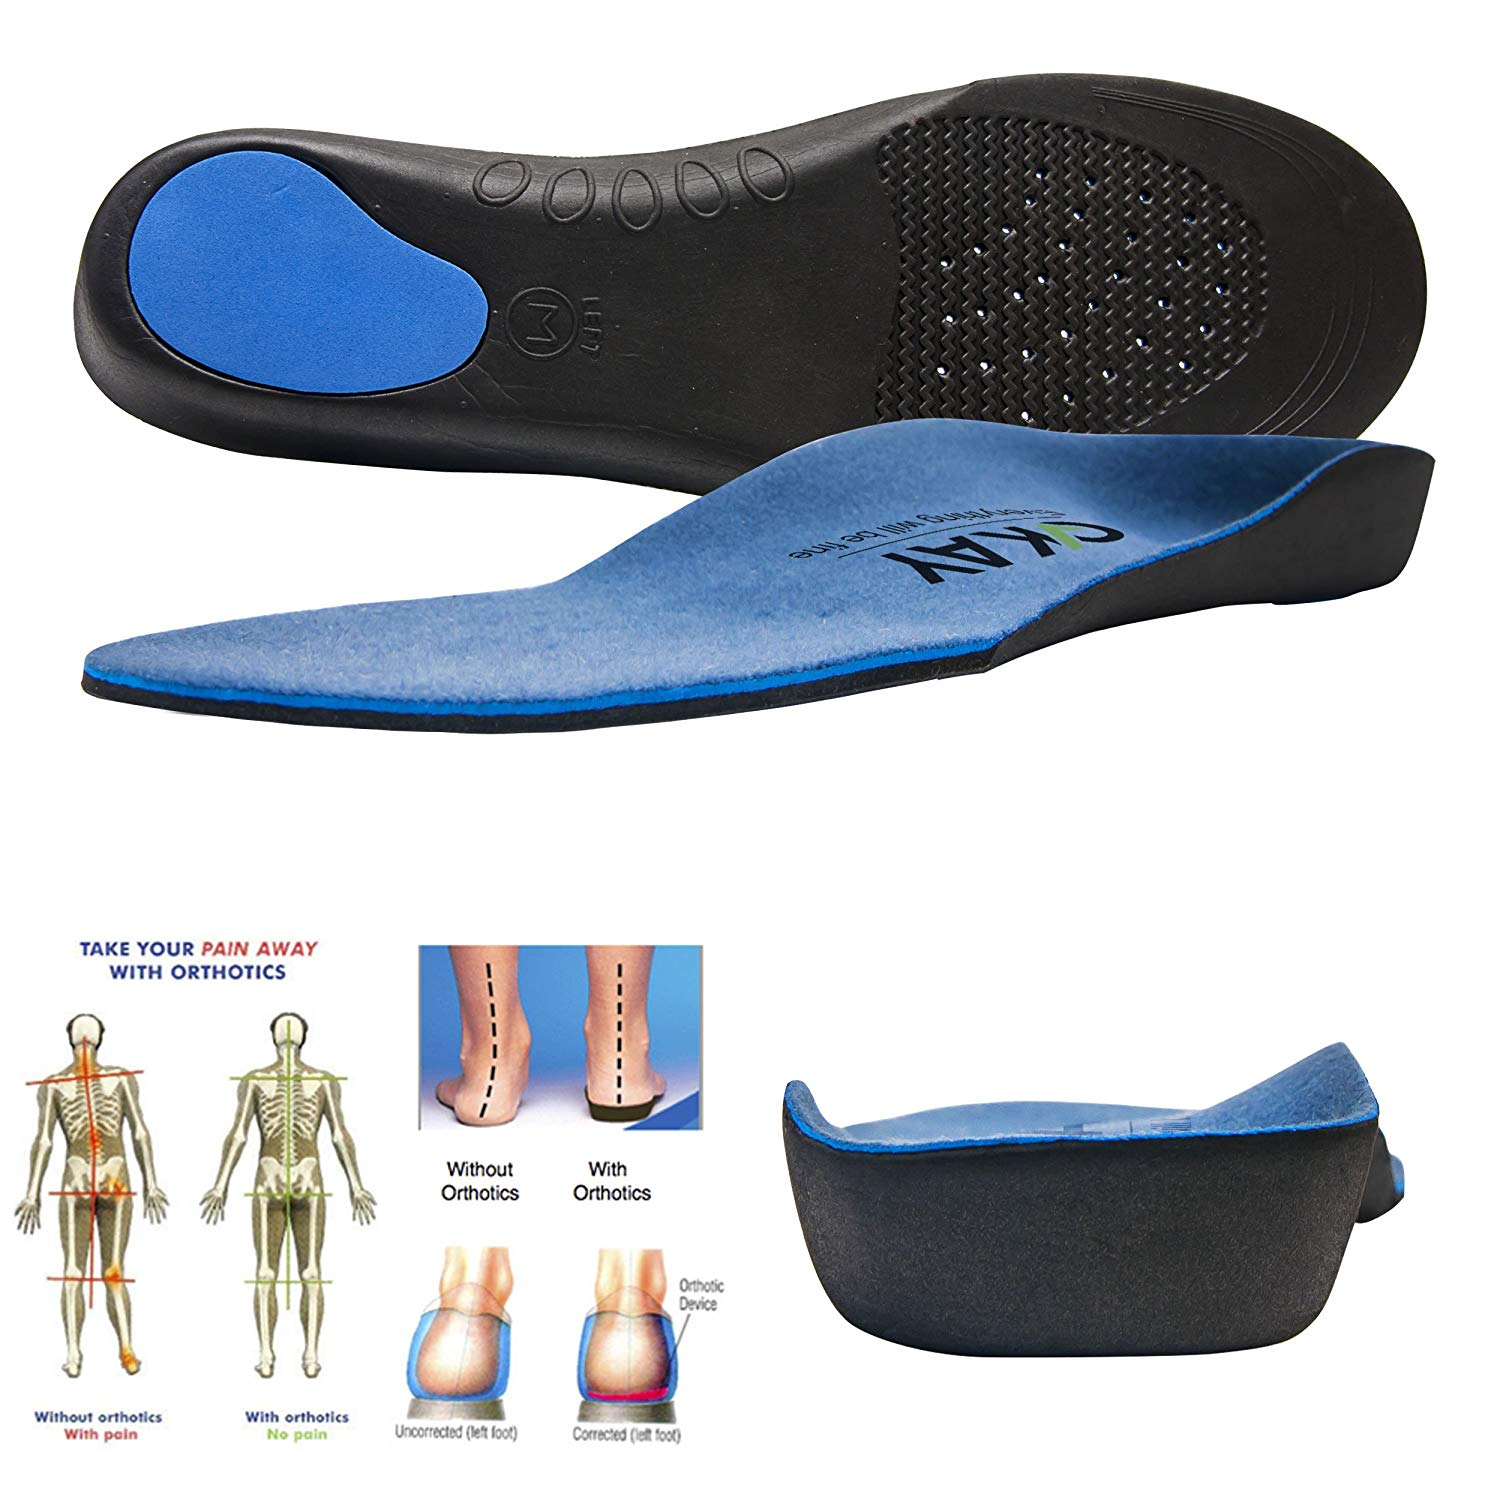 e49bff2876 Get Quotations · Arch Support Orthotic Shoe Insoles for women-men Shoe  Inserts Recommended for Plantar Fasciitis Fallen